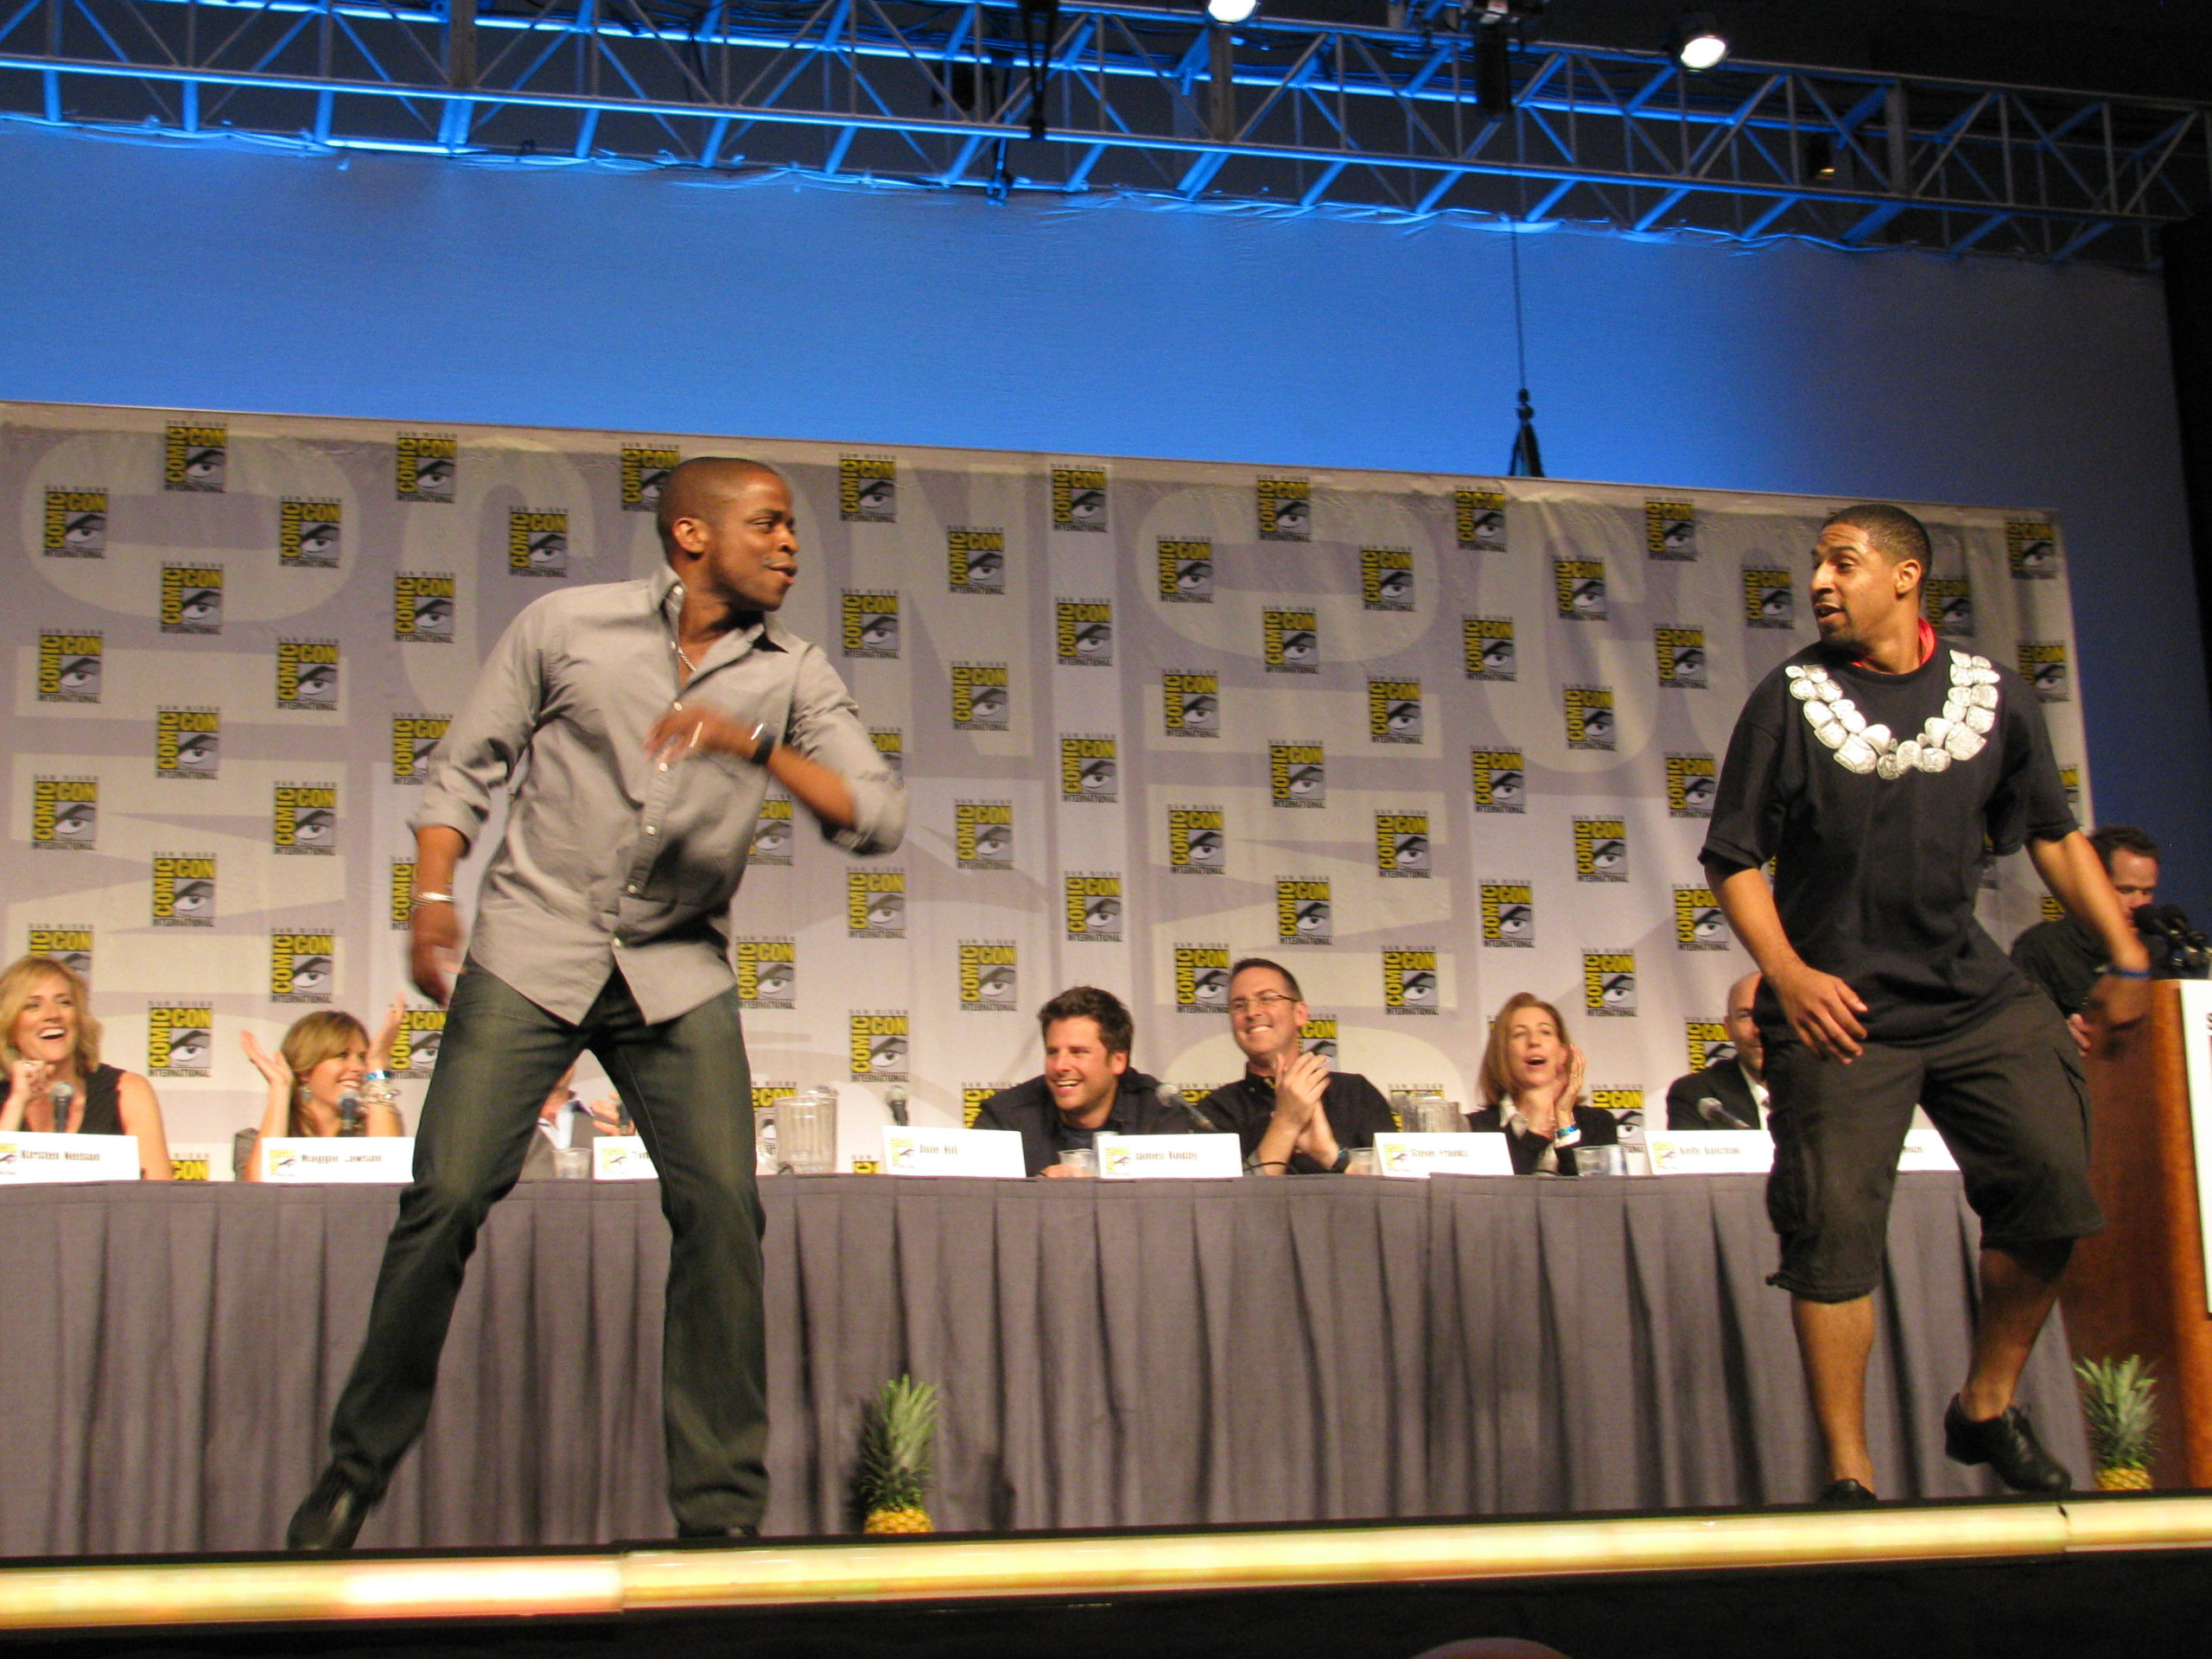 A Look Back At San Diego Comic Con 2010 | San Diego Comic Con